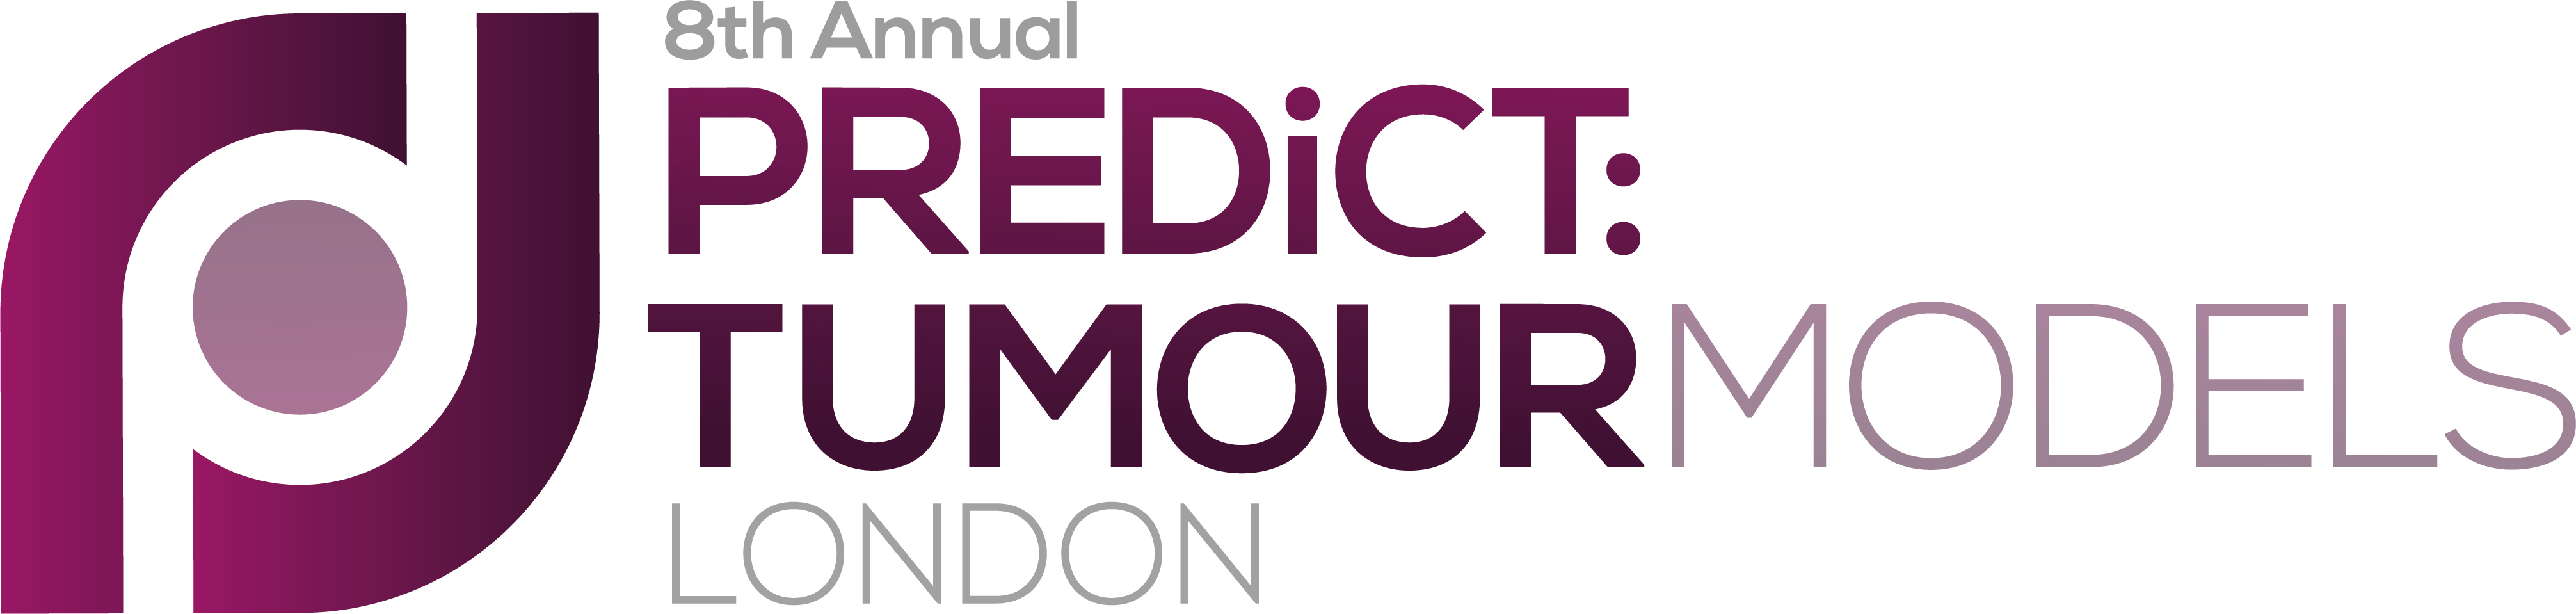 PREDiCT_Tumor Models London